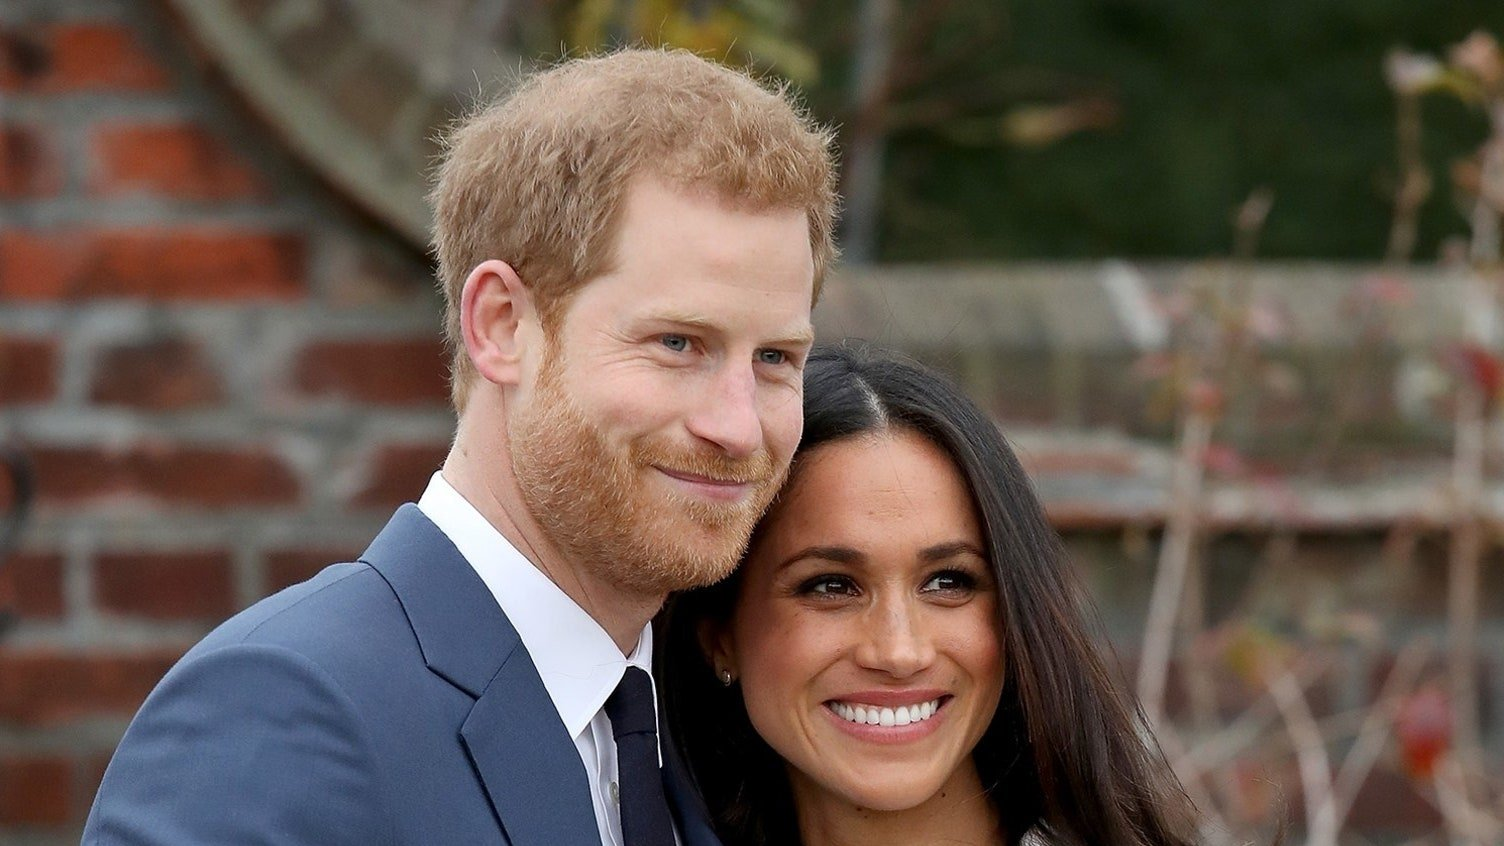 Prince Harry And Meghan Markle Announce Spotify Podcasting Deal – Details!